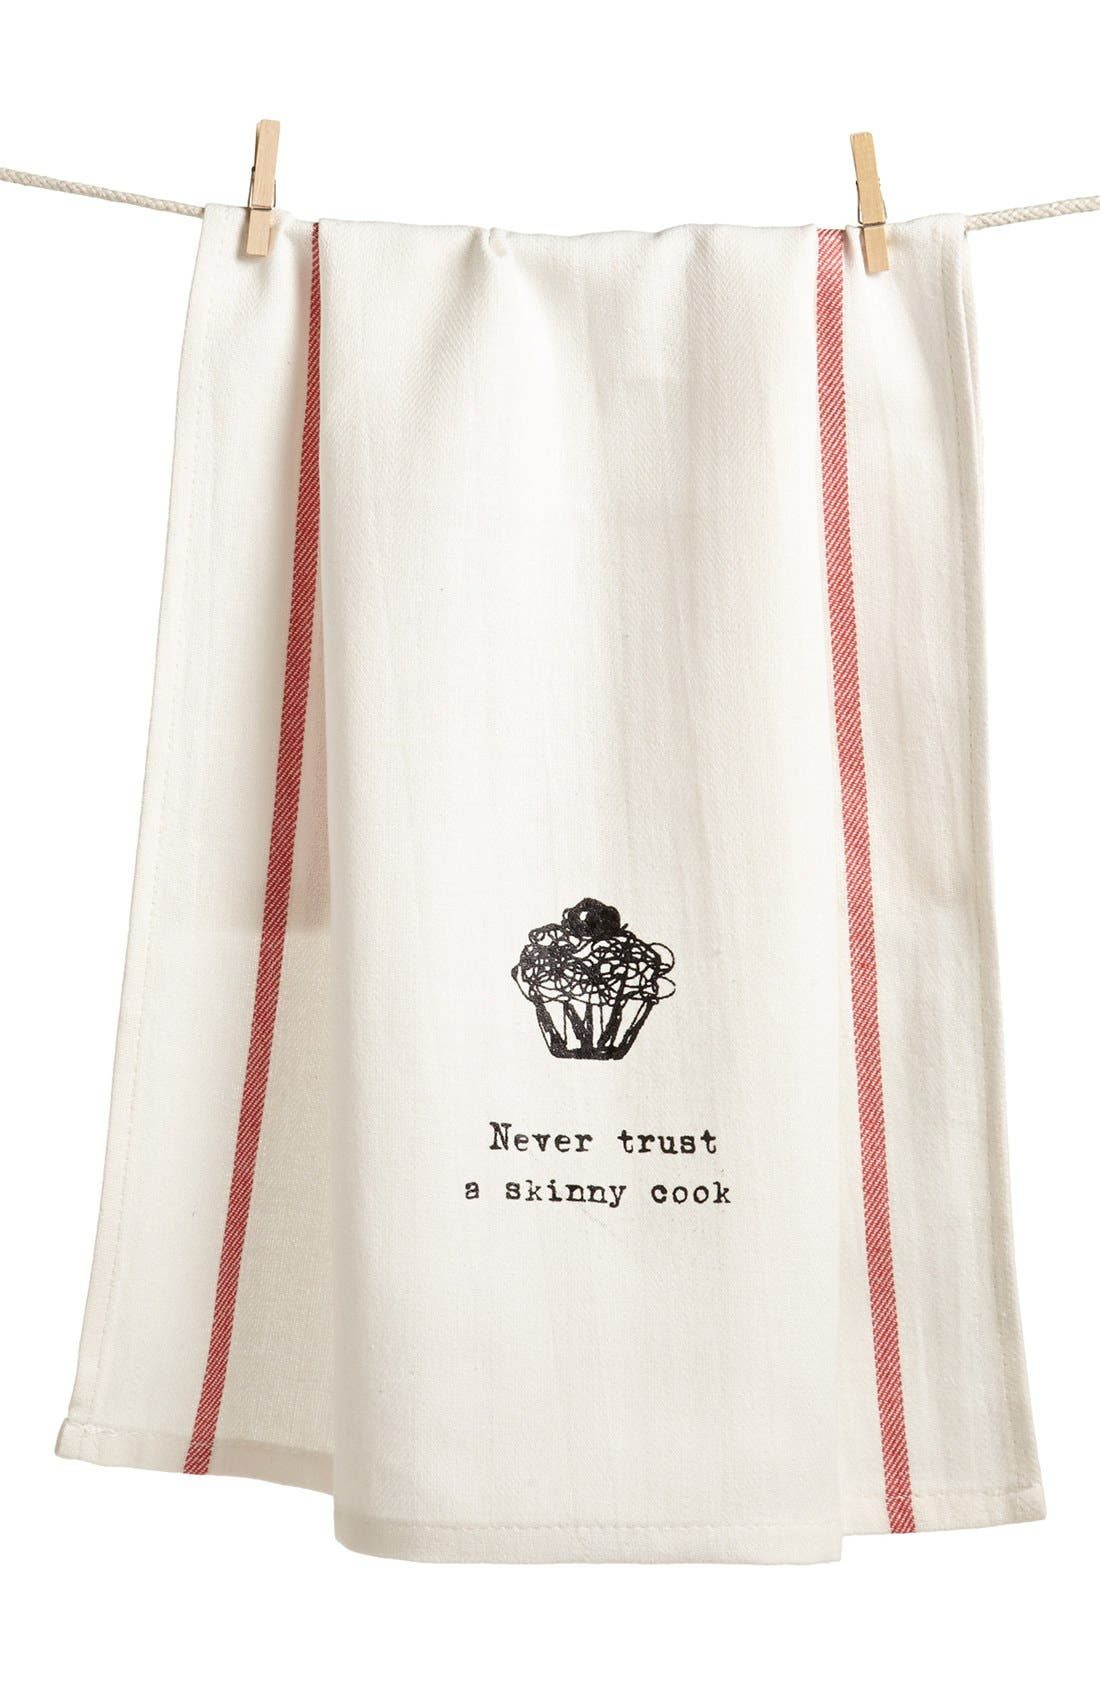 Alternate Image 1 Selected - Second Nature By Hand 'Never Trust a Skinny Cook' Towel